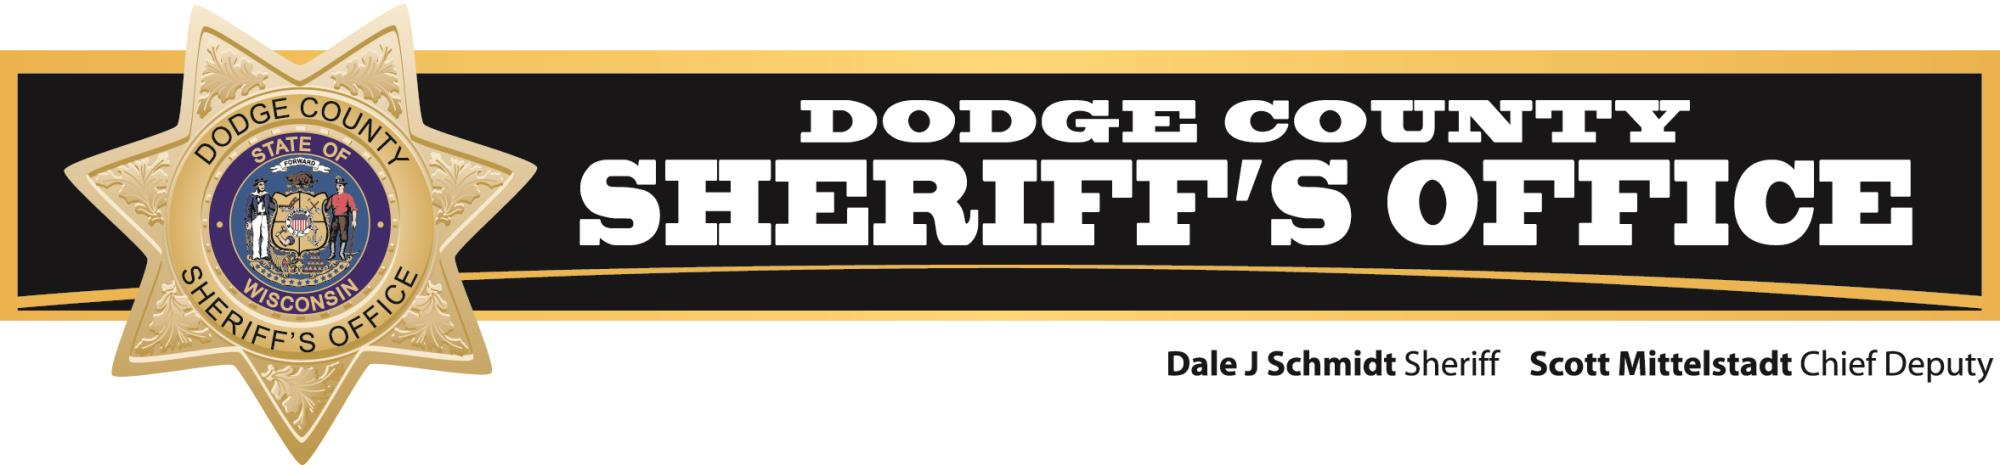 Press Releases 2018 | Dodge County, WI